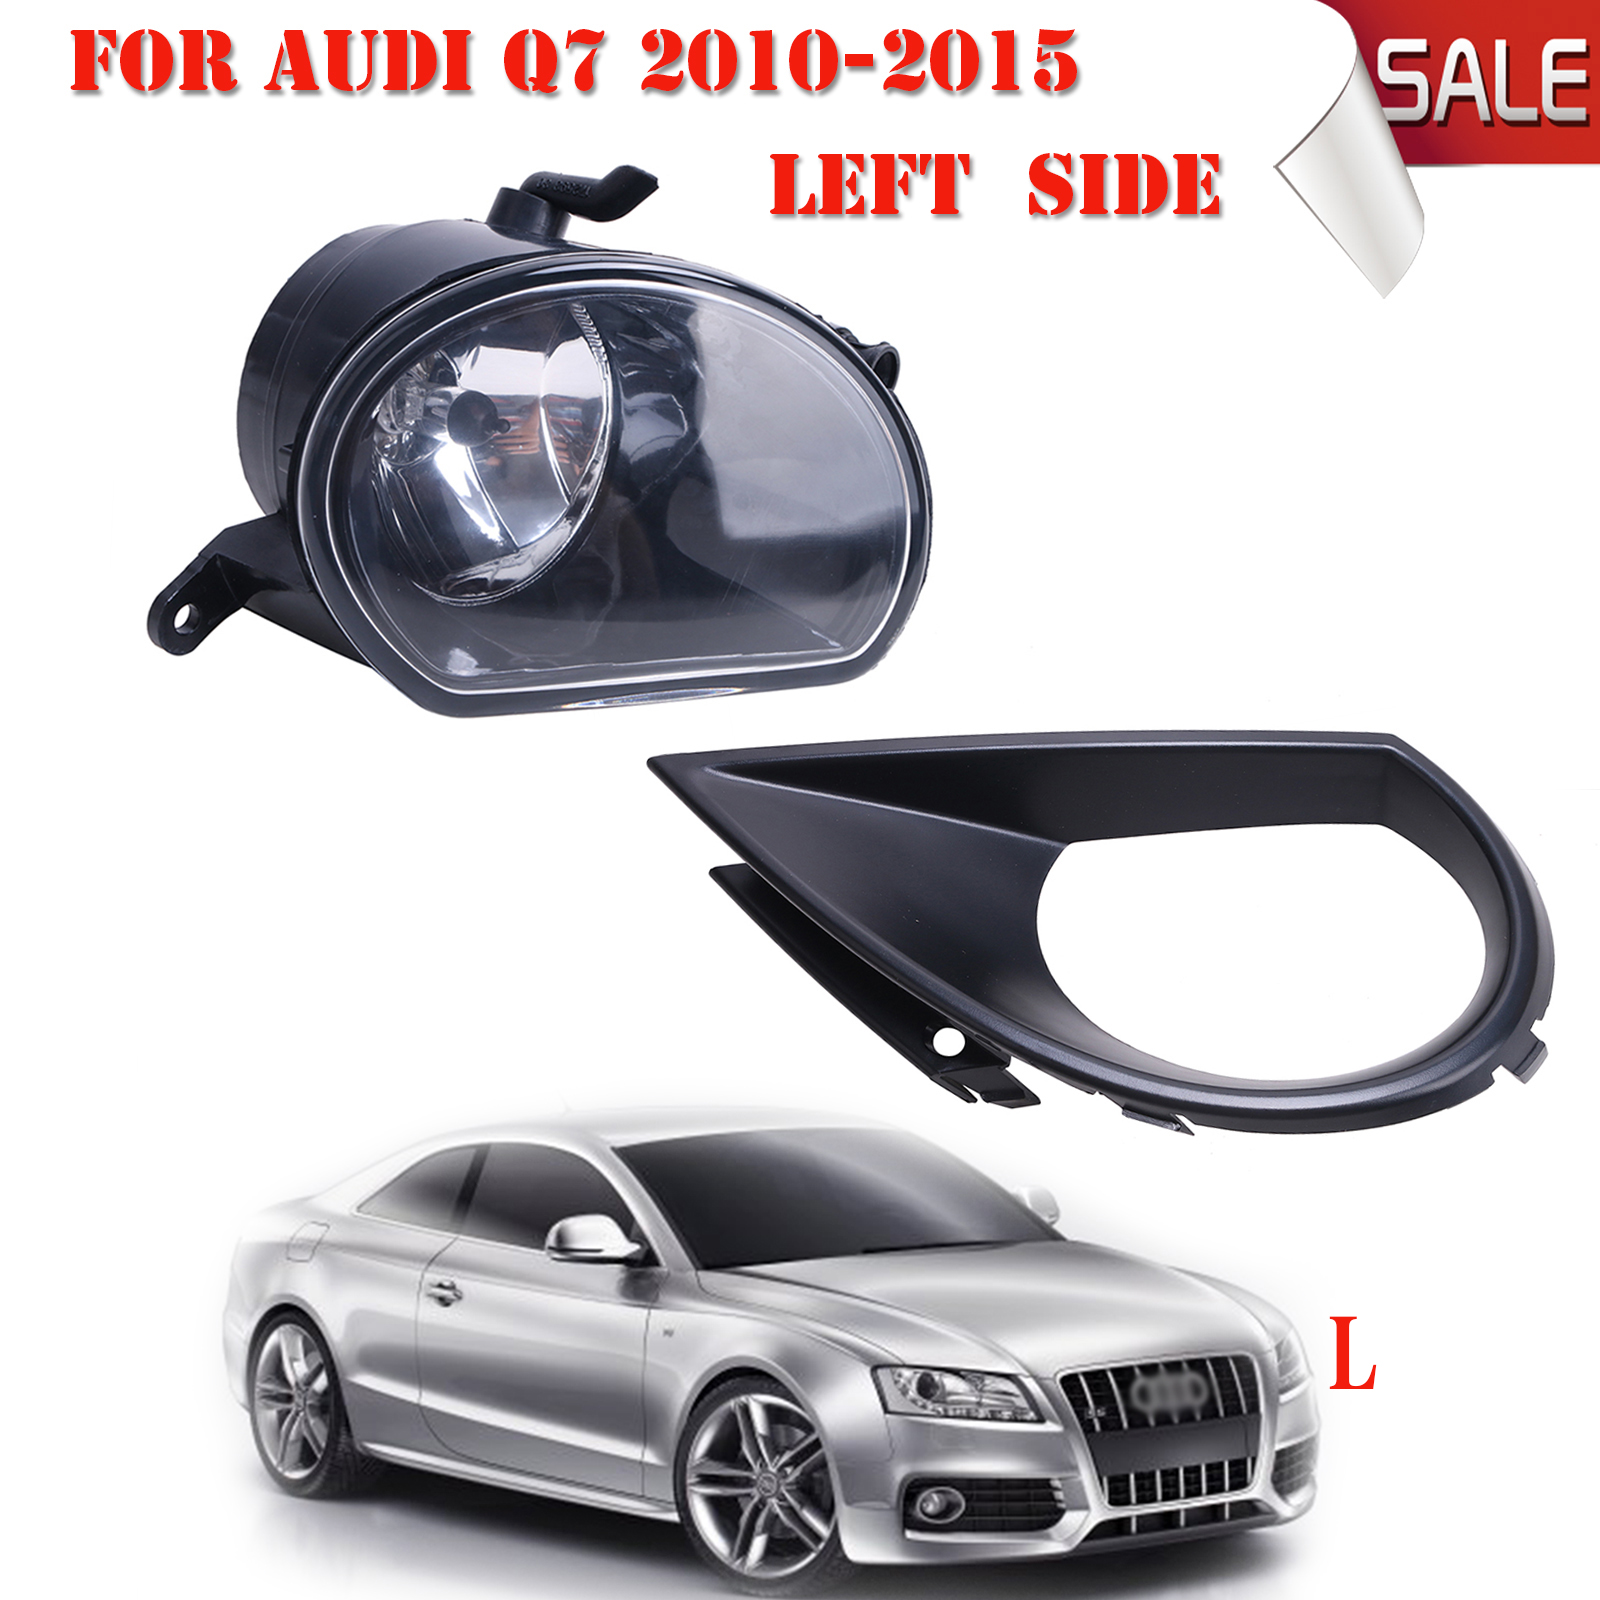 Left Side Front Lower Grill Grille Fog Light Lamp For Audi Q7 Standard Bumper 2010 2011 2012 2013 20142015 with Bulb H11 #P330<br><br>Aliexpress